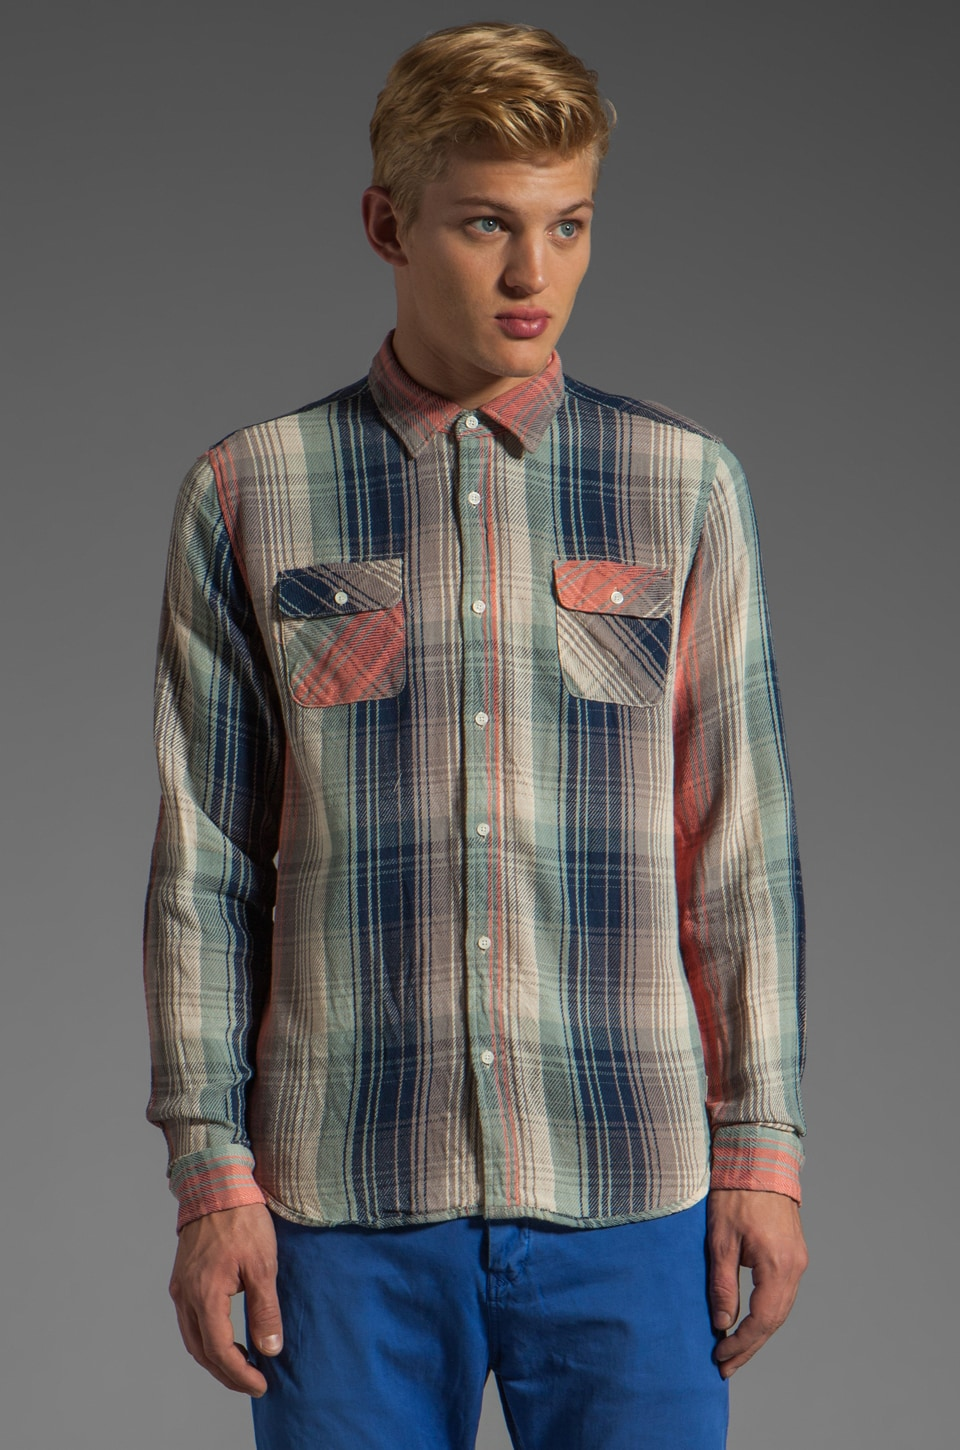 Scotch & Soda Summer Flannel in Blue/Coral/White